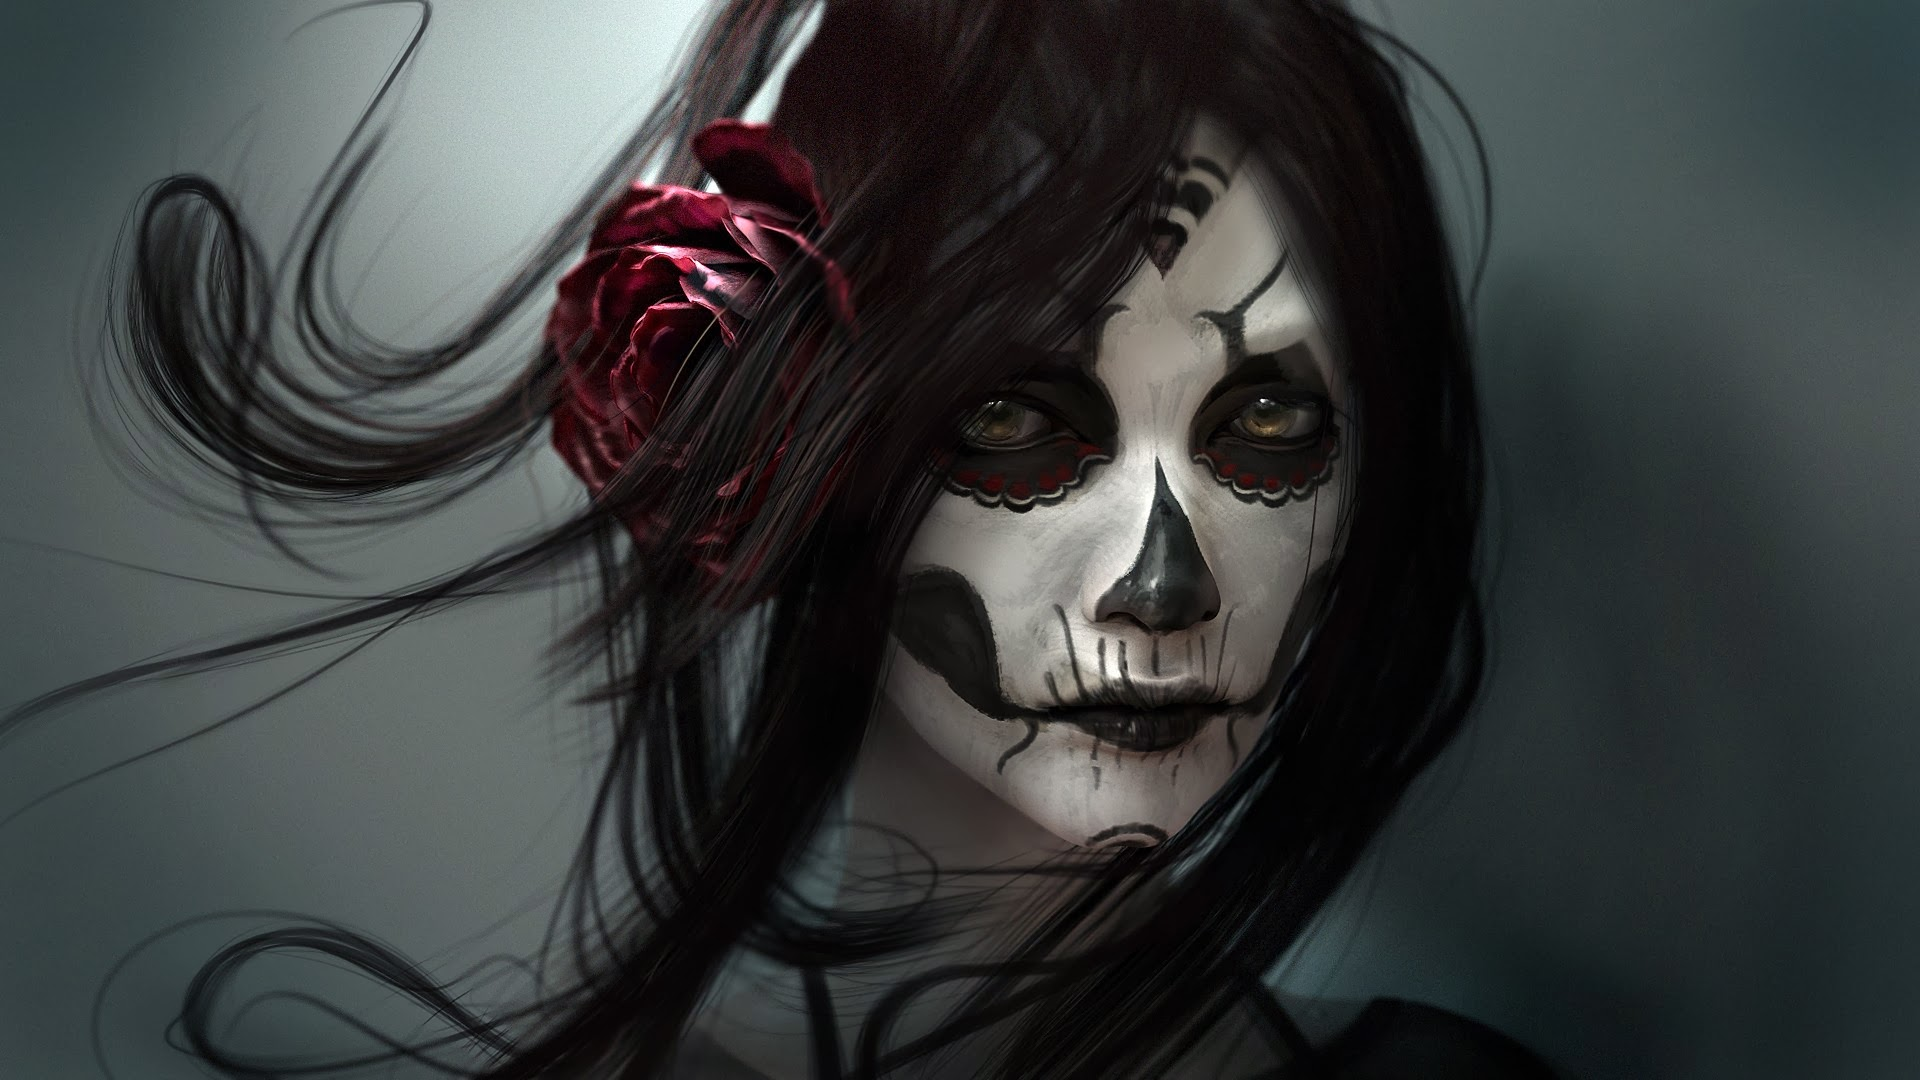 girl-beautiful-skull-face-tattoo-hd-wallpaper-1920x1080